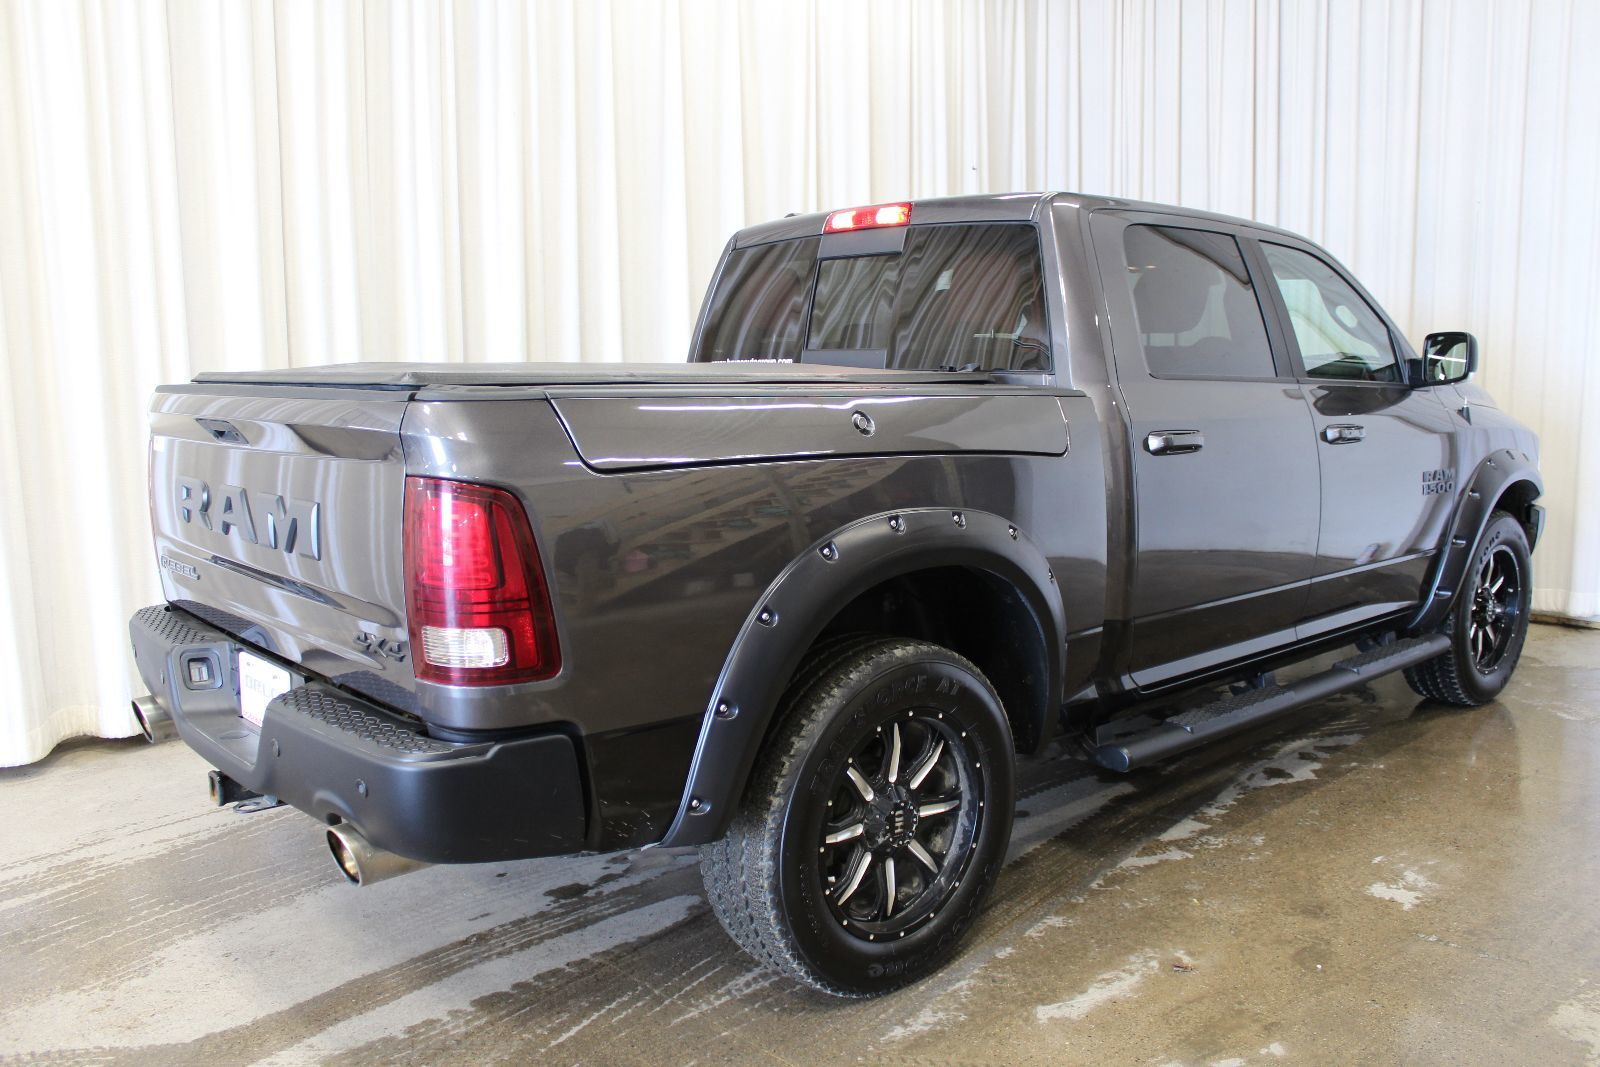 used 2016 dodge ram 1500 rebel 5 7l 8 cyl hemi automatic 4x4 crew cab in middleton gd17041a. Black Bedroom Furniture Sets. Home Design Ideas